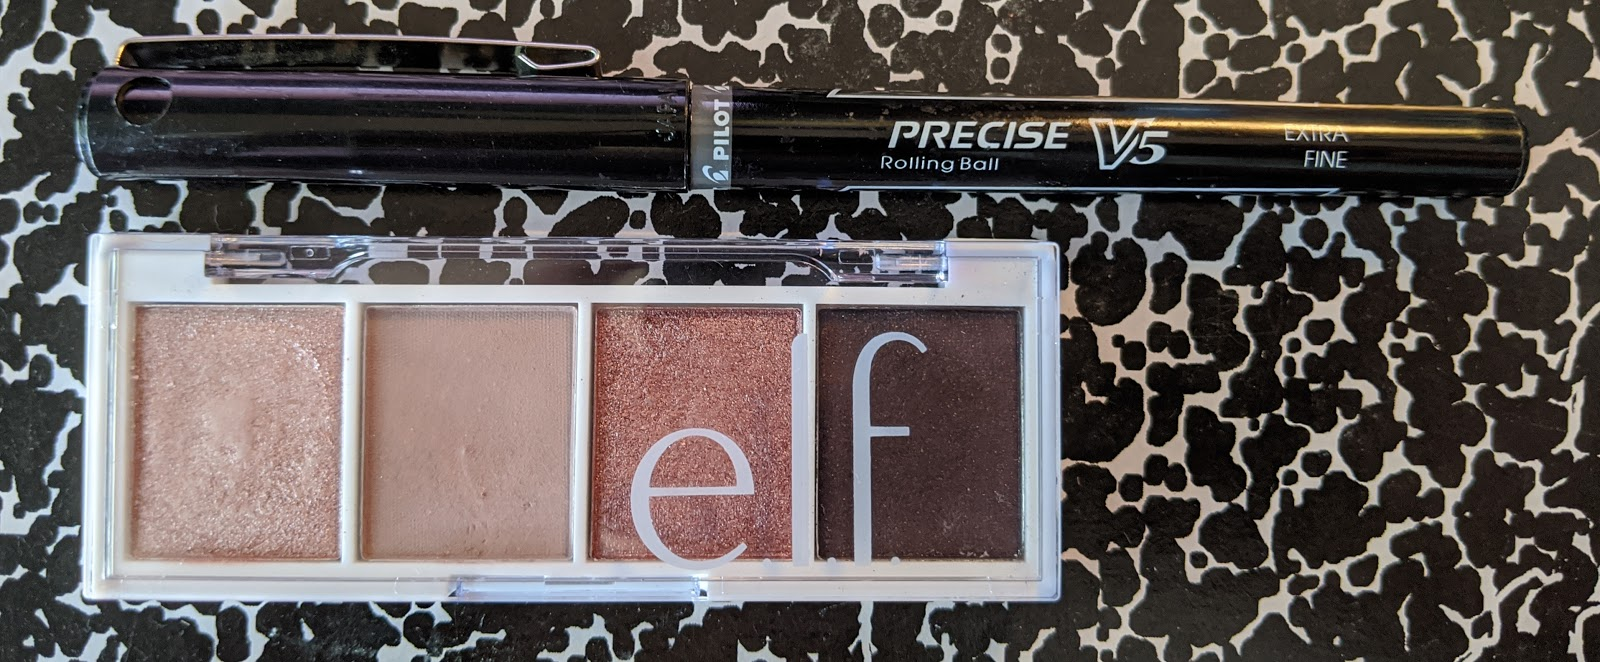 e.l.f. palette size comparison with pen